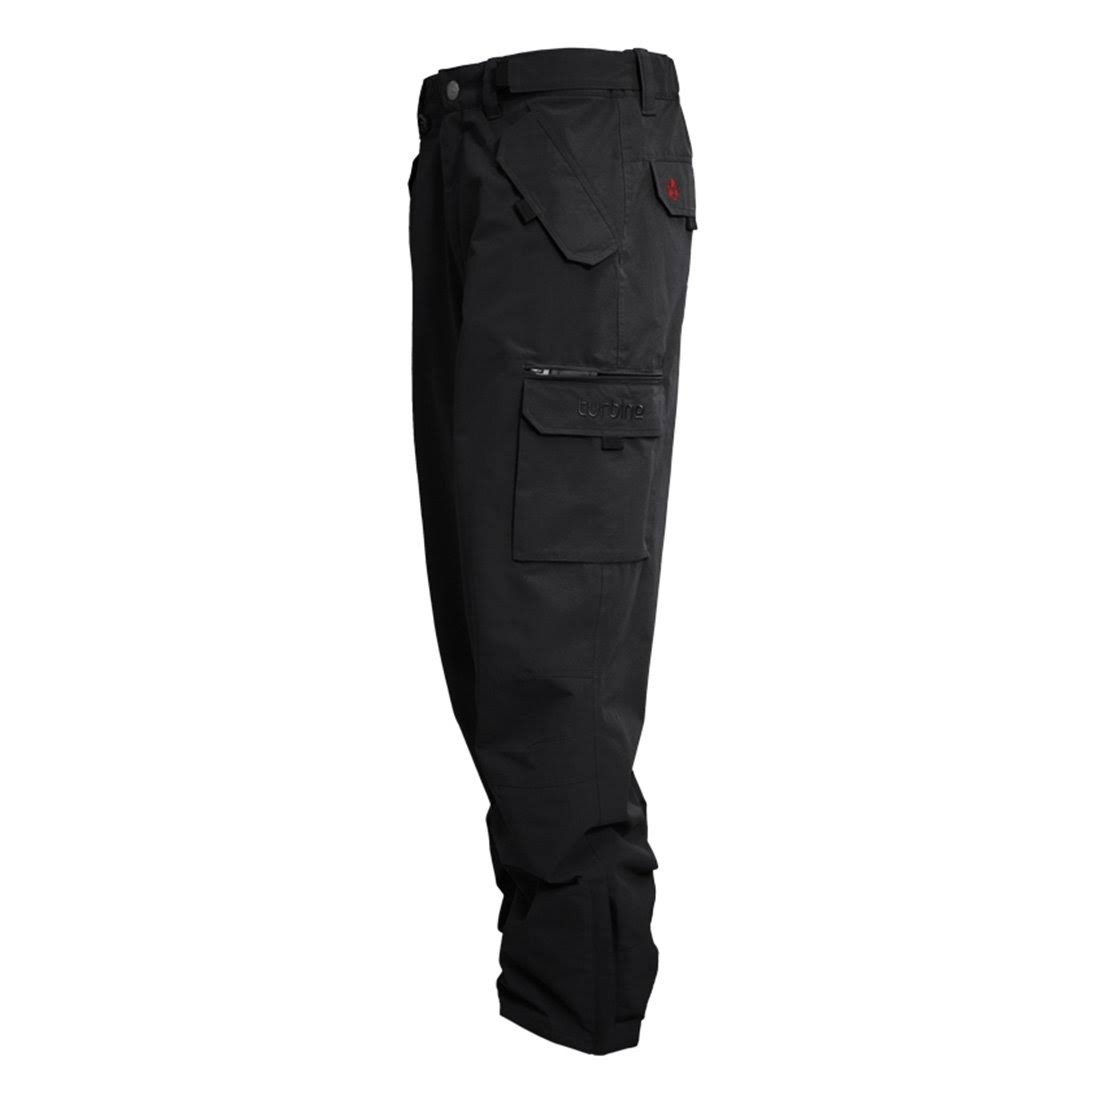 Turbine FDGB Mens Snowboard Pants